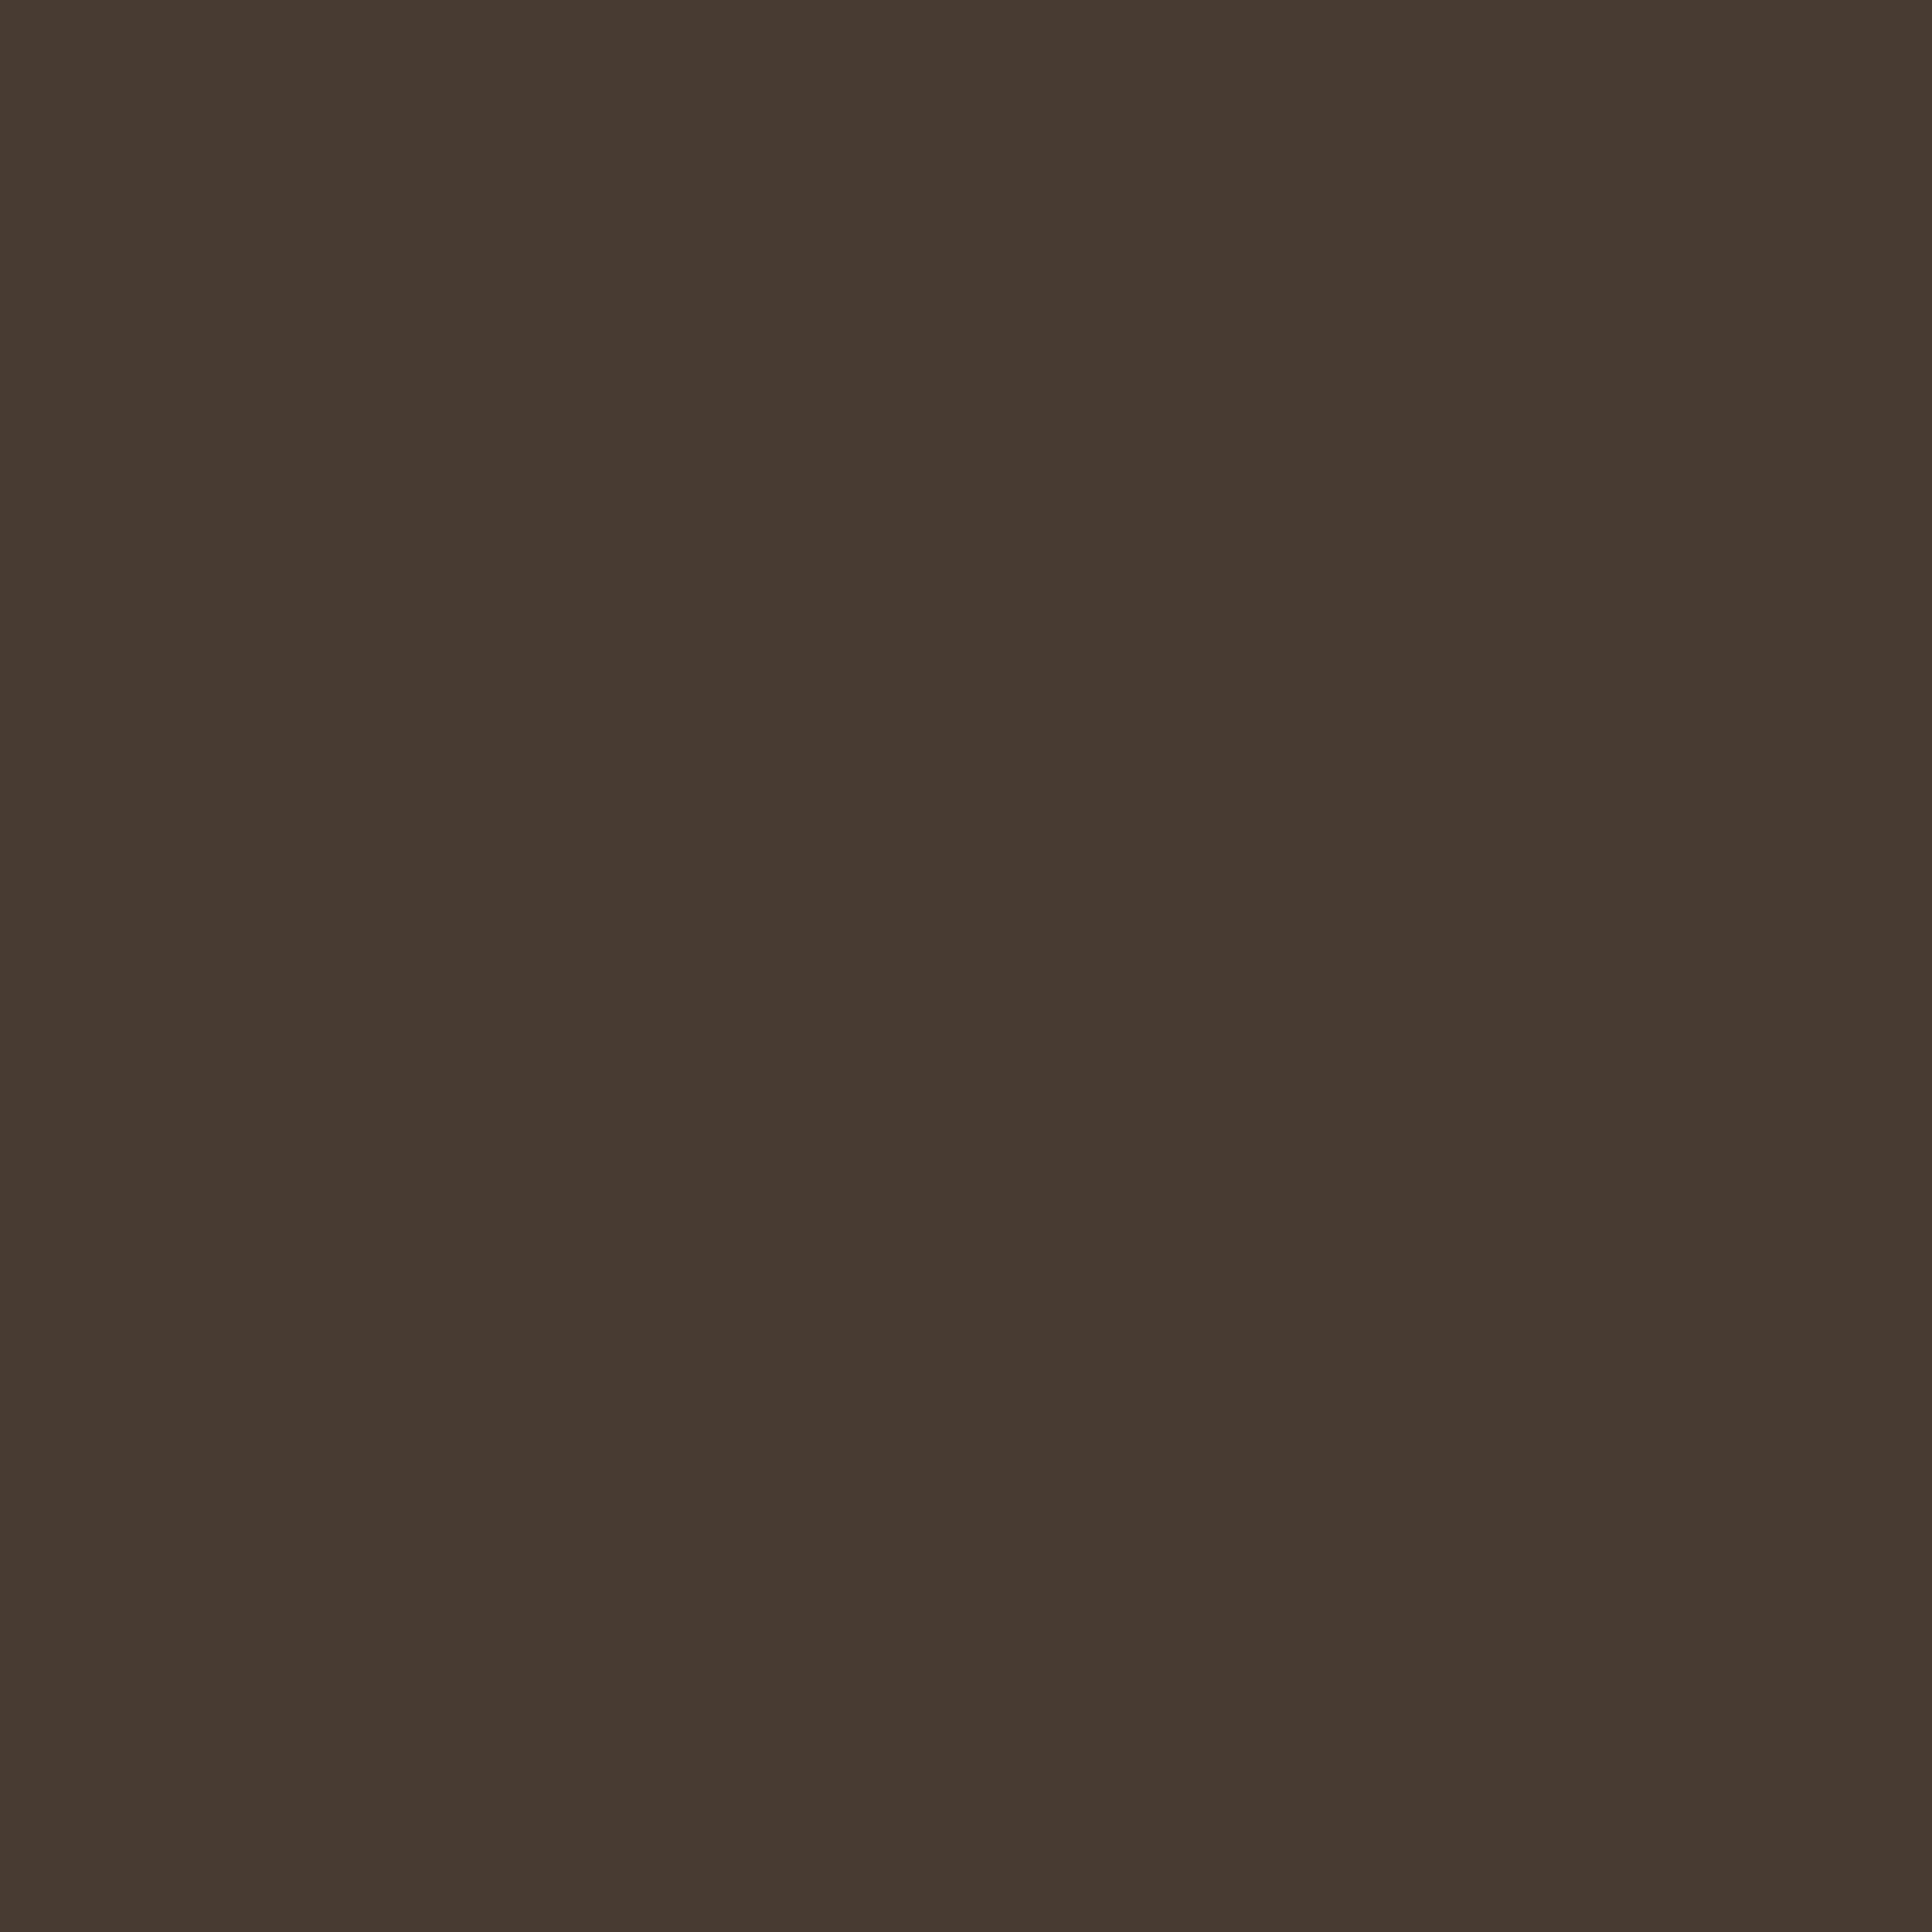 2048x2048 Dark Taupe Solid Color Background